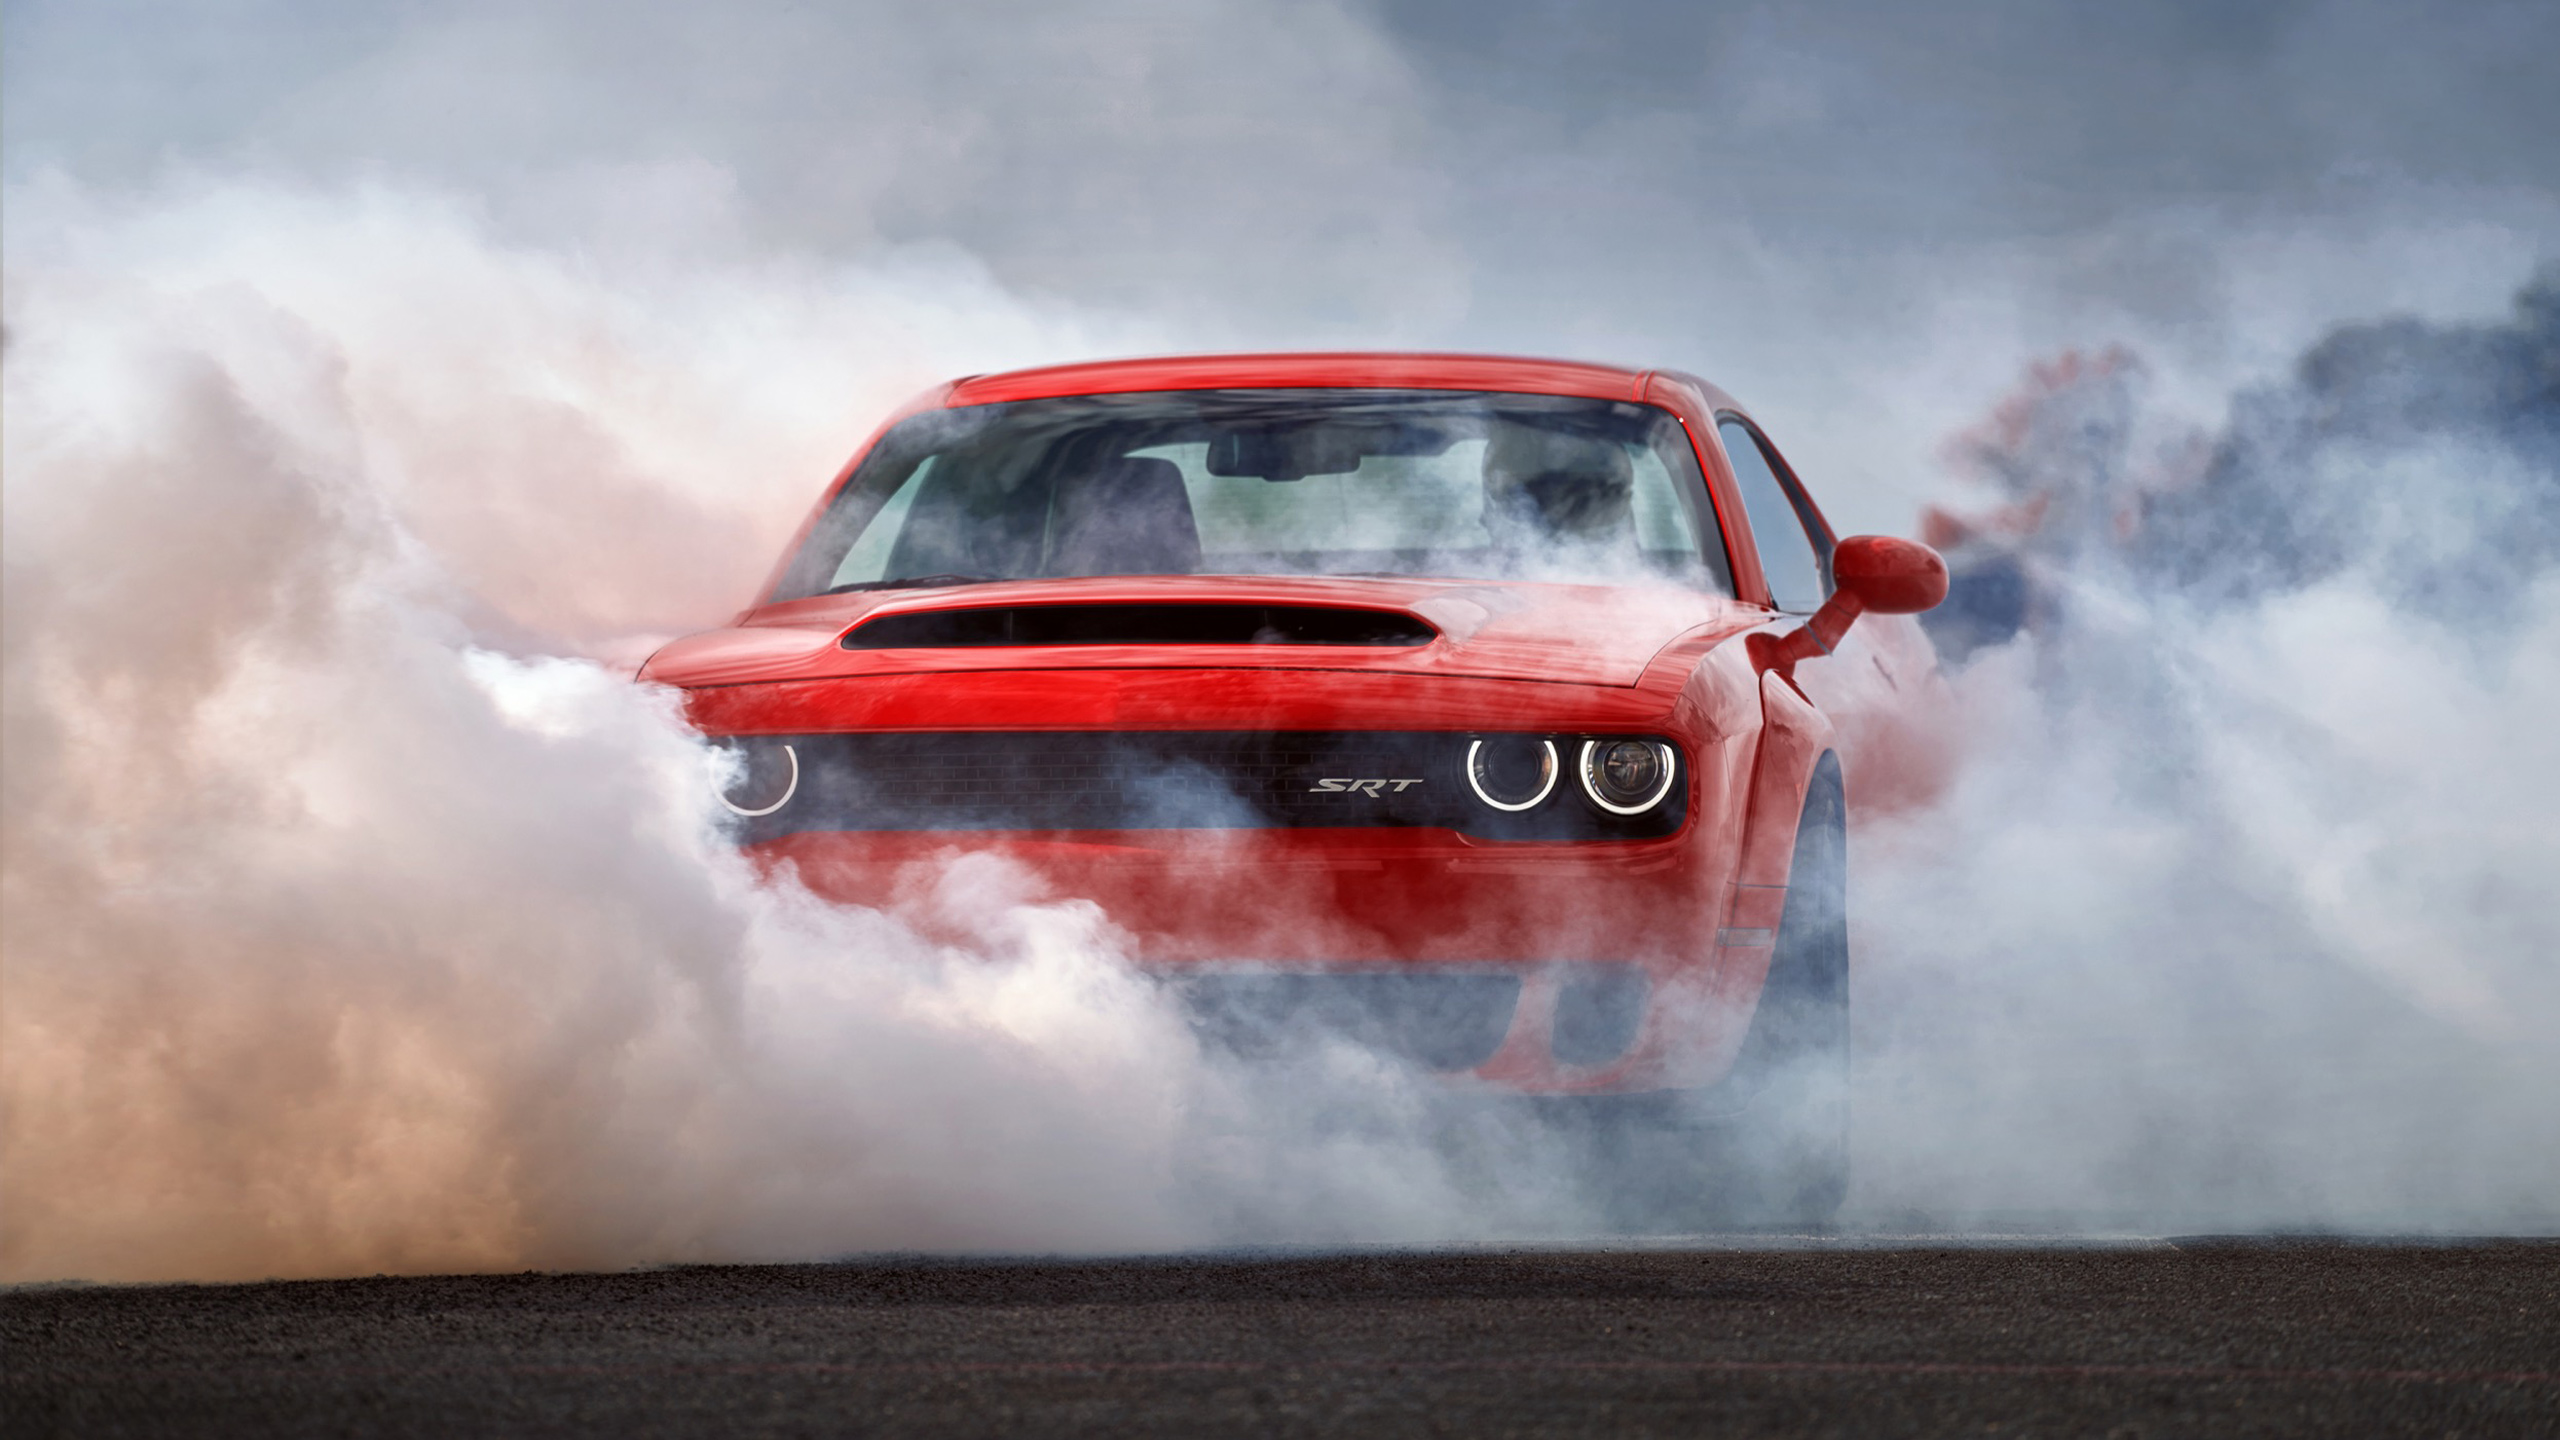 2018 dodge challenger srt demon wallpaper | hd car wallpapers | id #7717